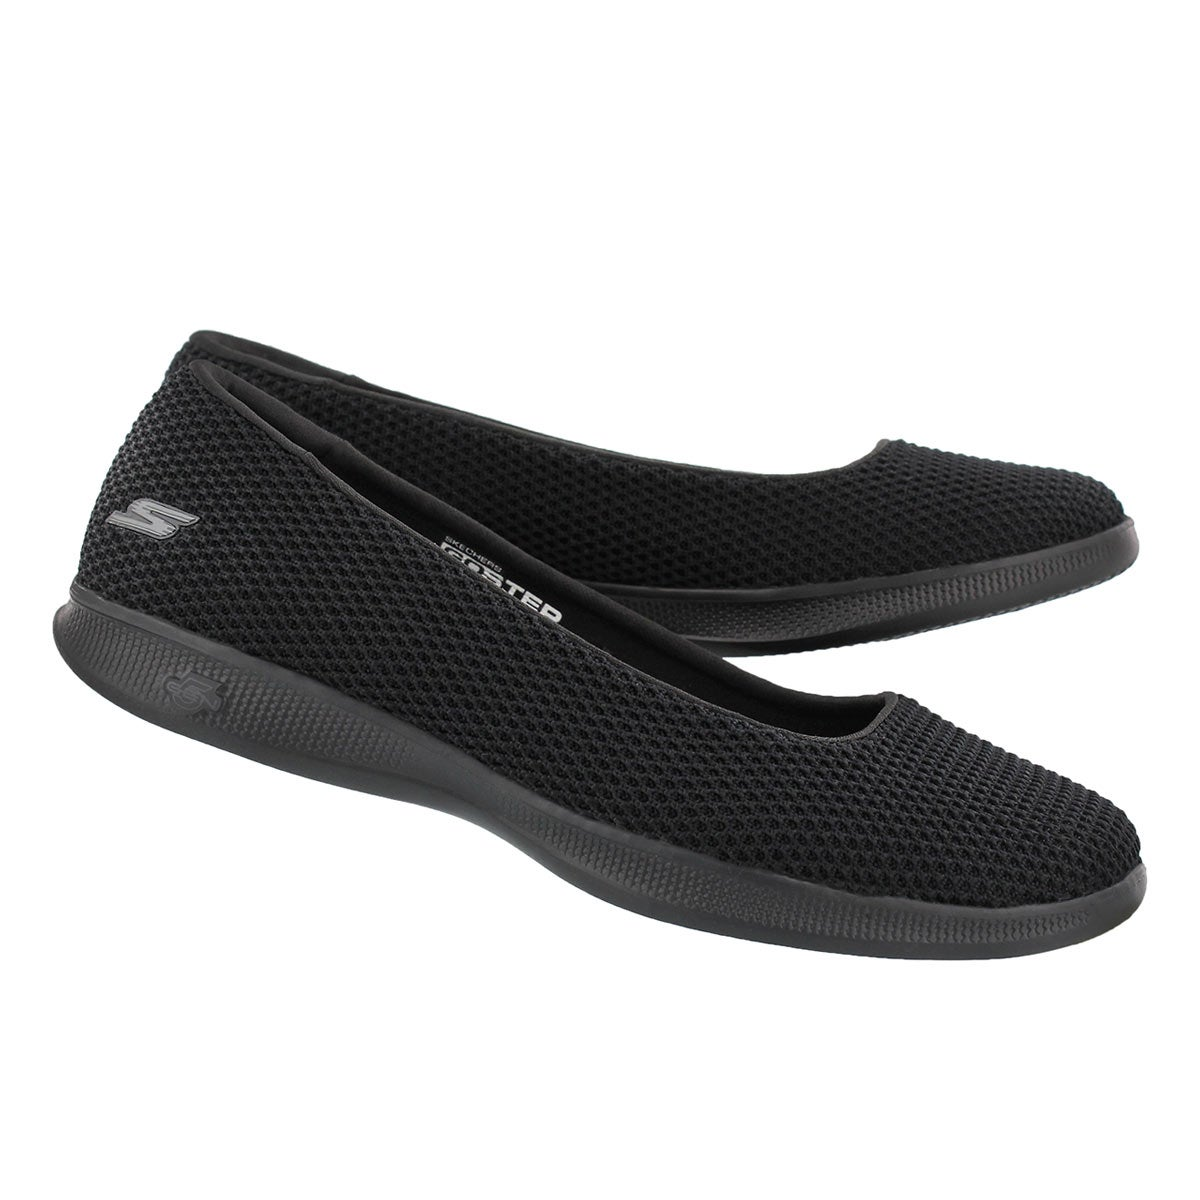 Lds GO Step Lite black knit casual flat